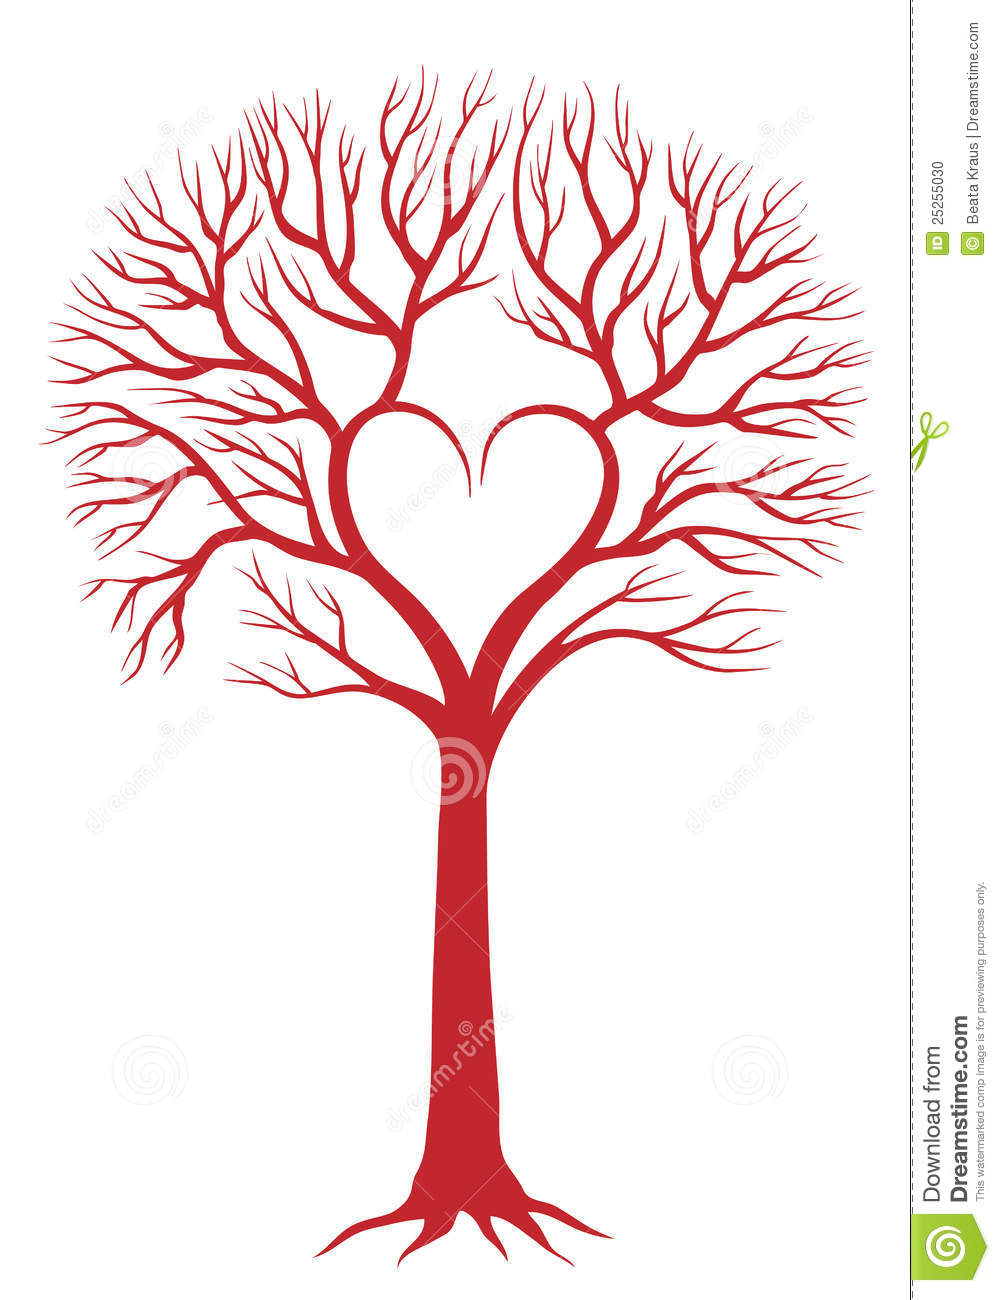 Red love tree with heart shaped branches, vector background.